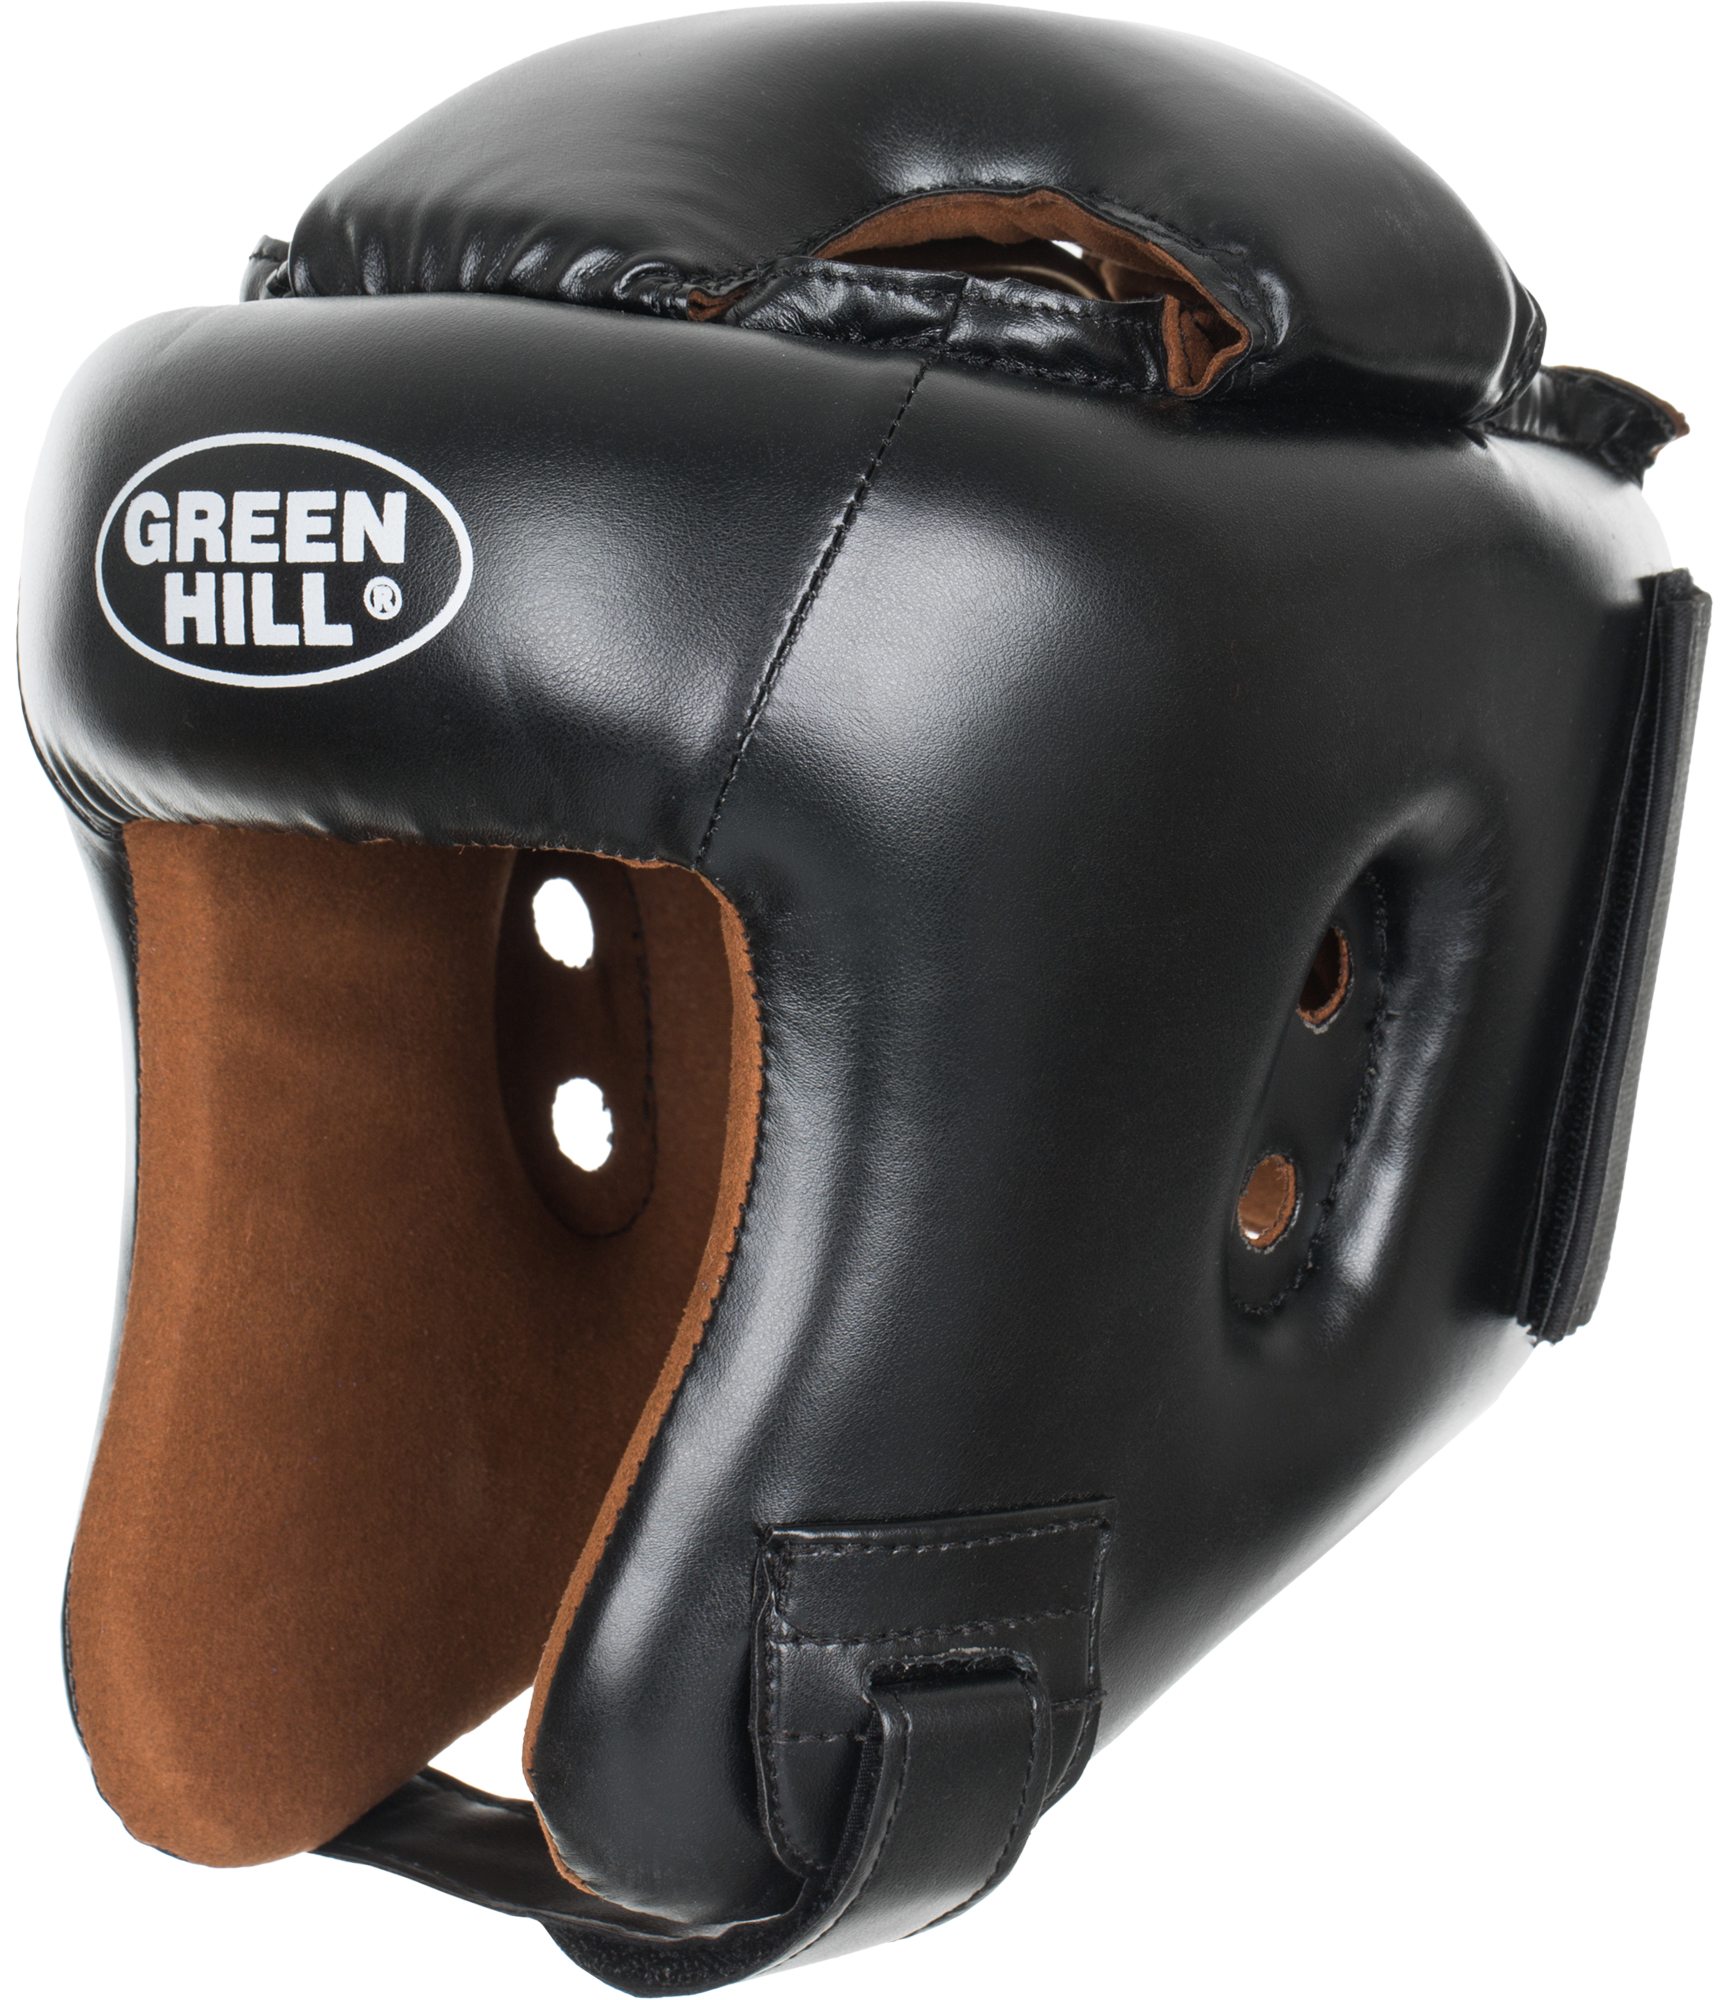 Green Hill Шлем Green Hill Headgear шлем боксерский venum elite headgear 100% premium leather